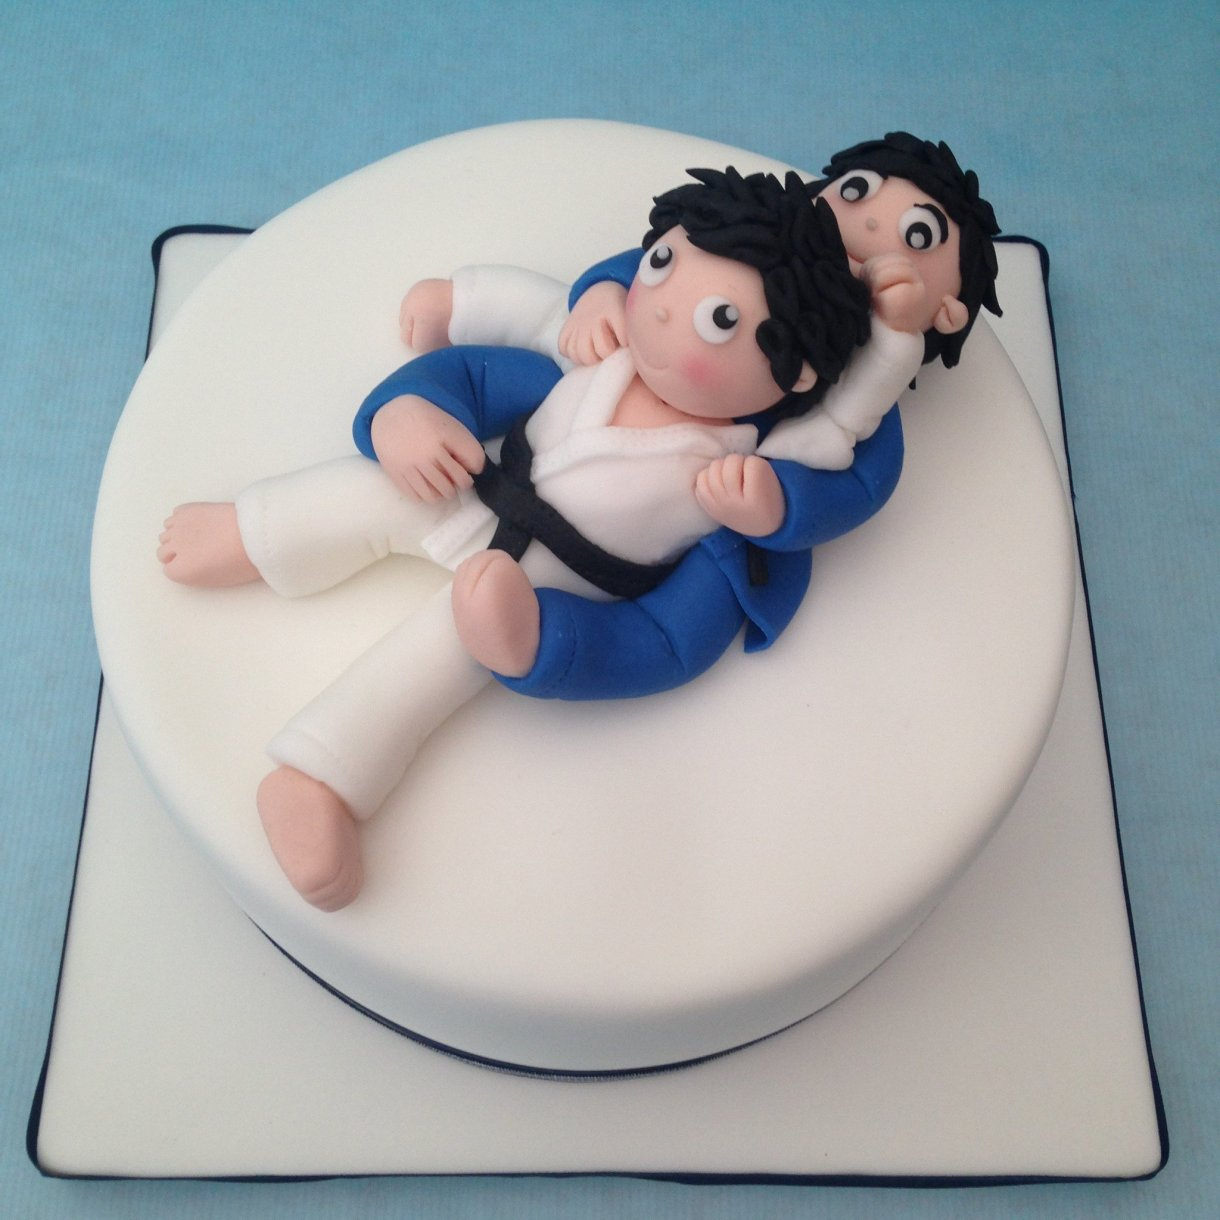 a cake of two judokas humping on their backs